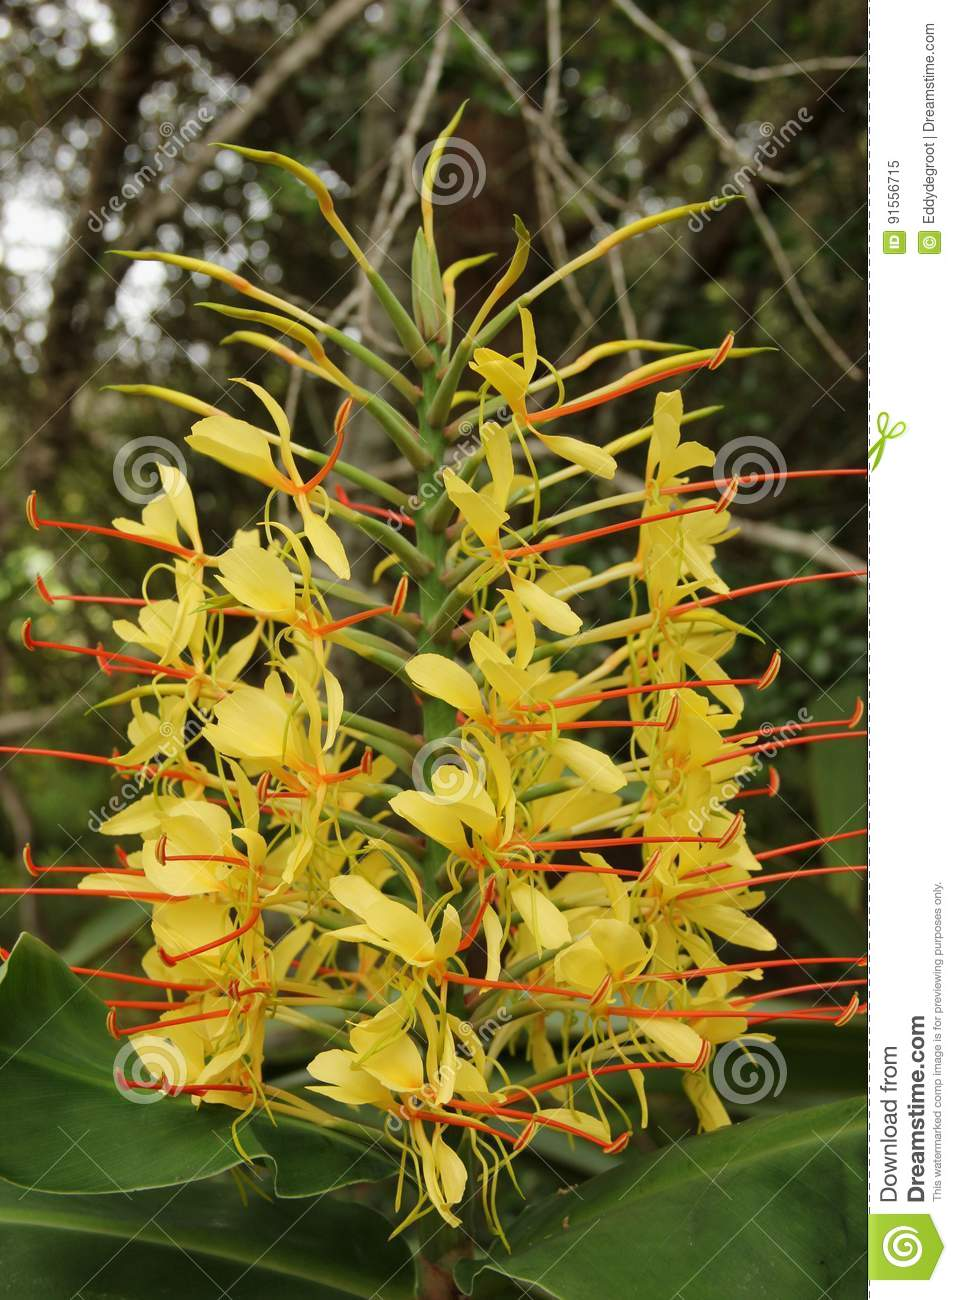 Hedychium Spicatum Stock Image Image Of Flower Indian 91556715